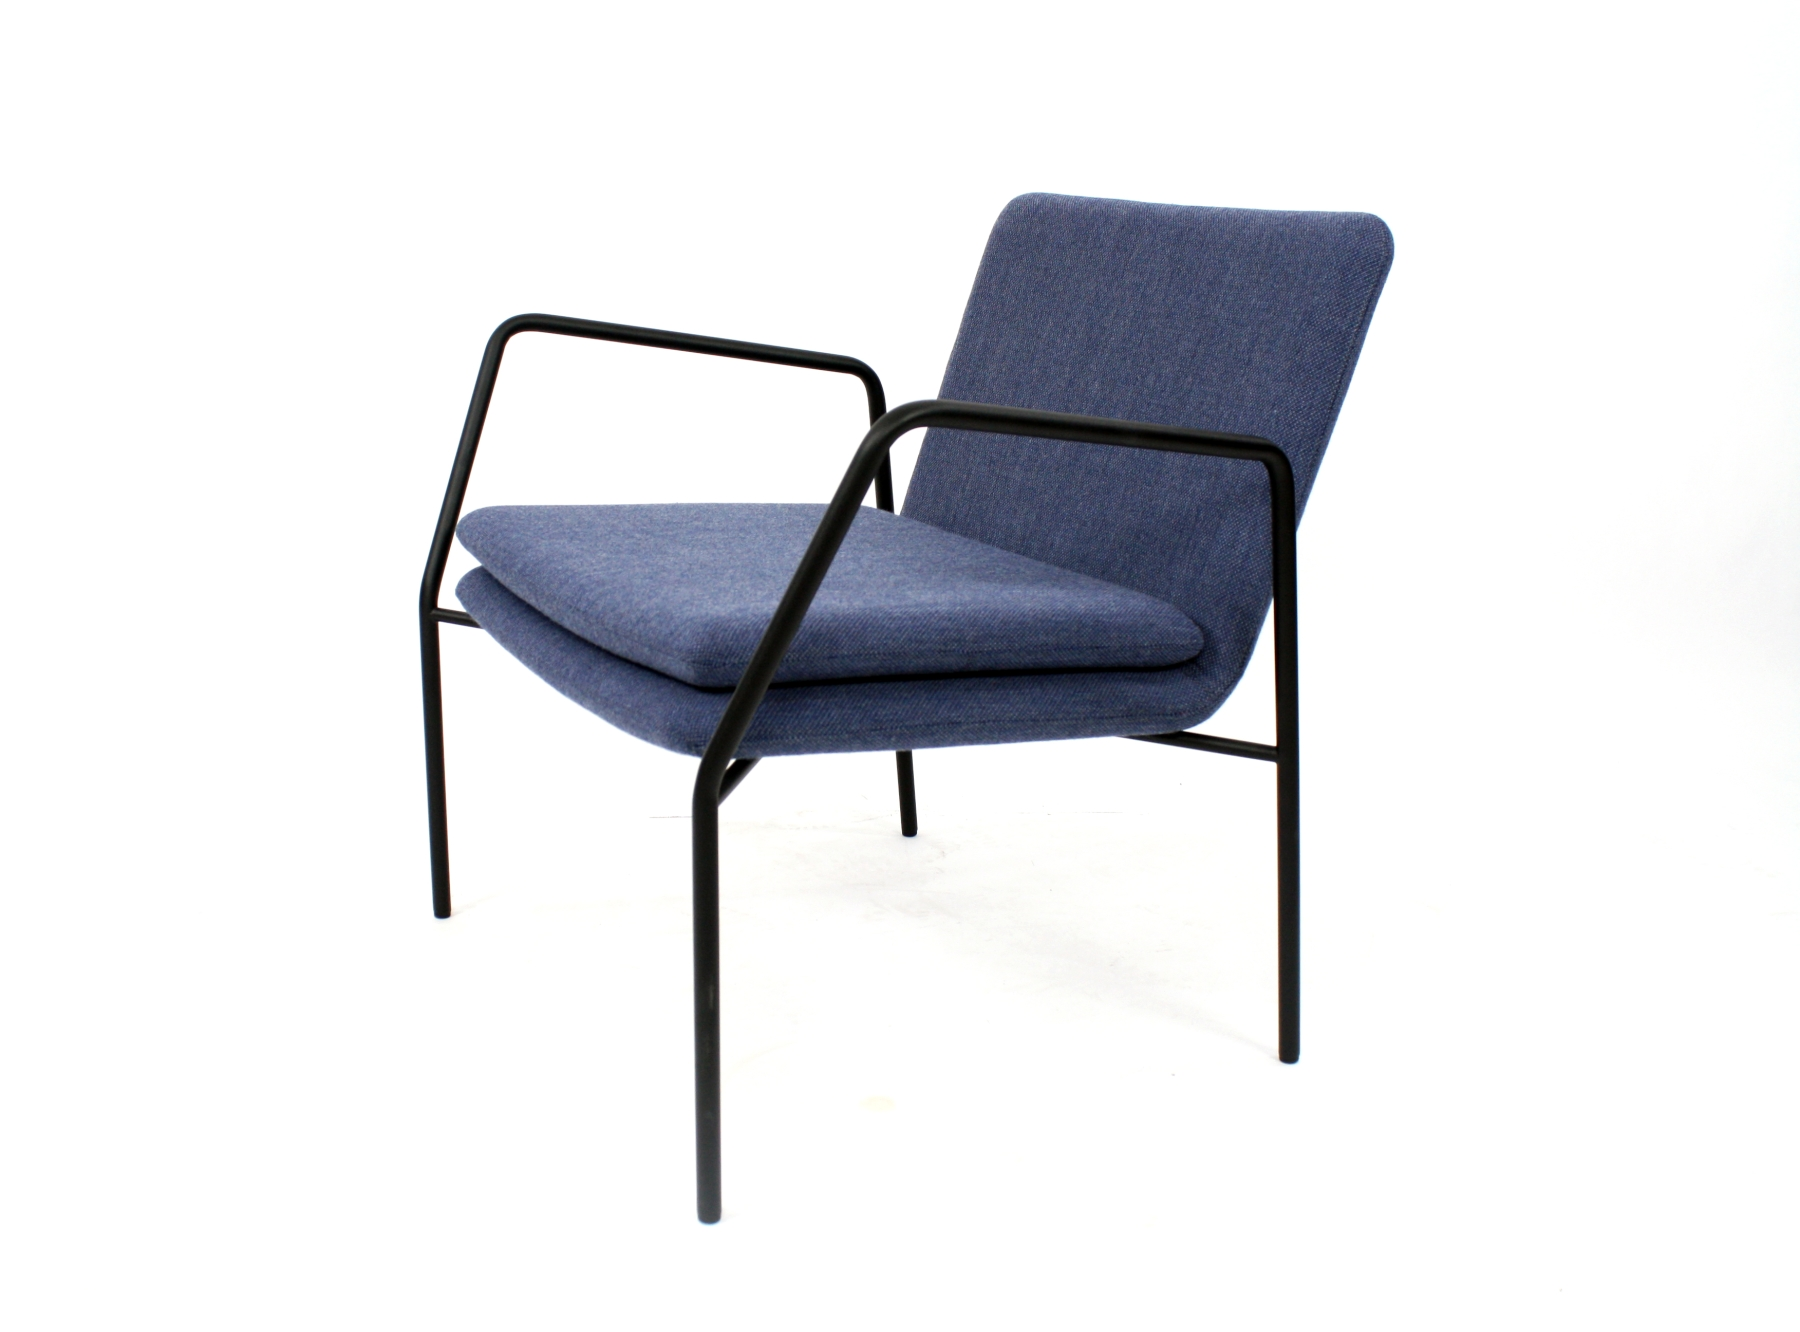 JENSENplus Lounge Chair Hoyo